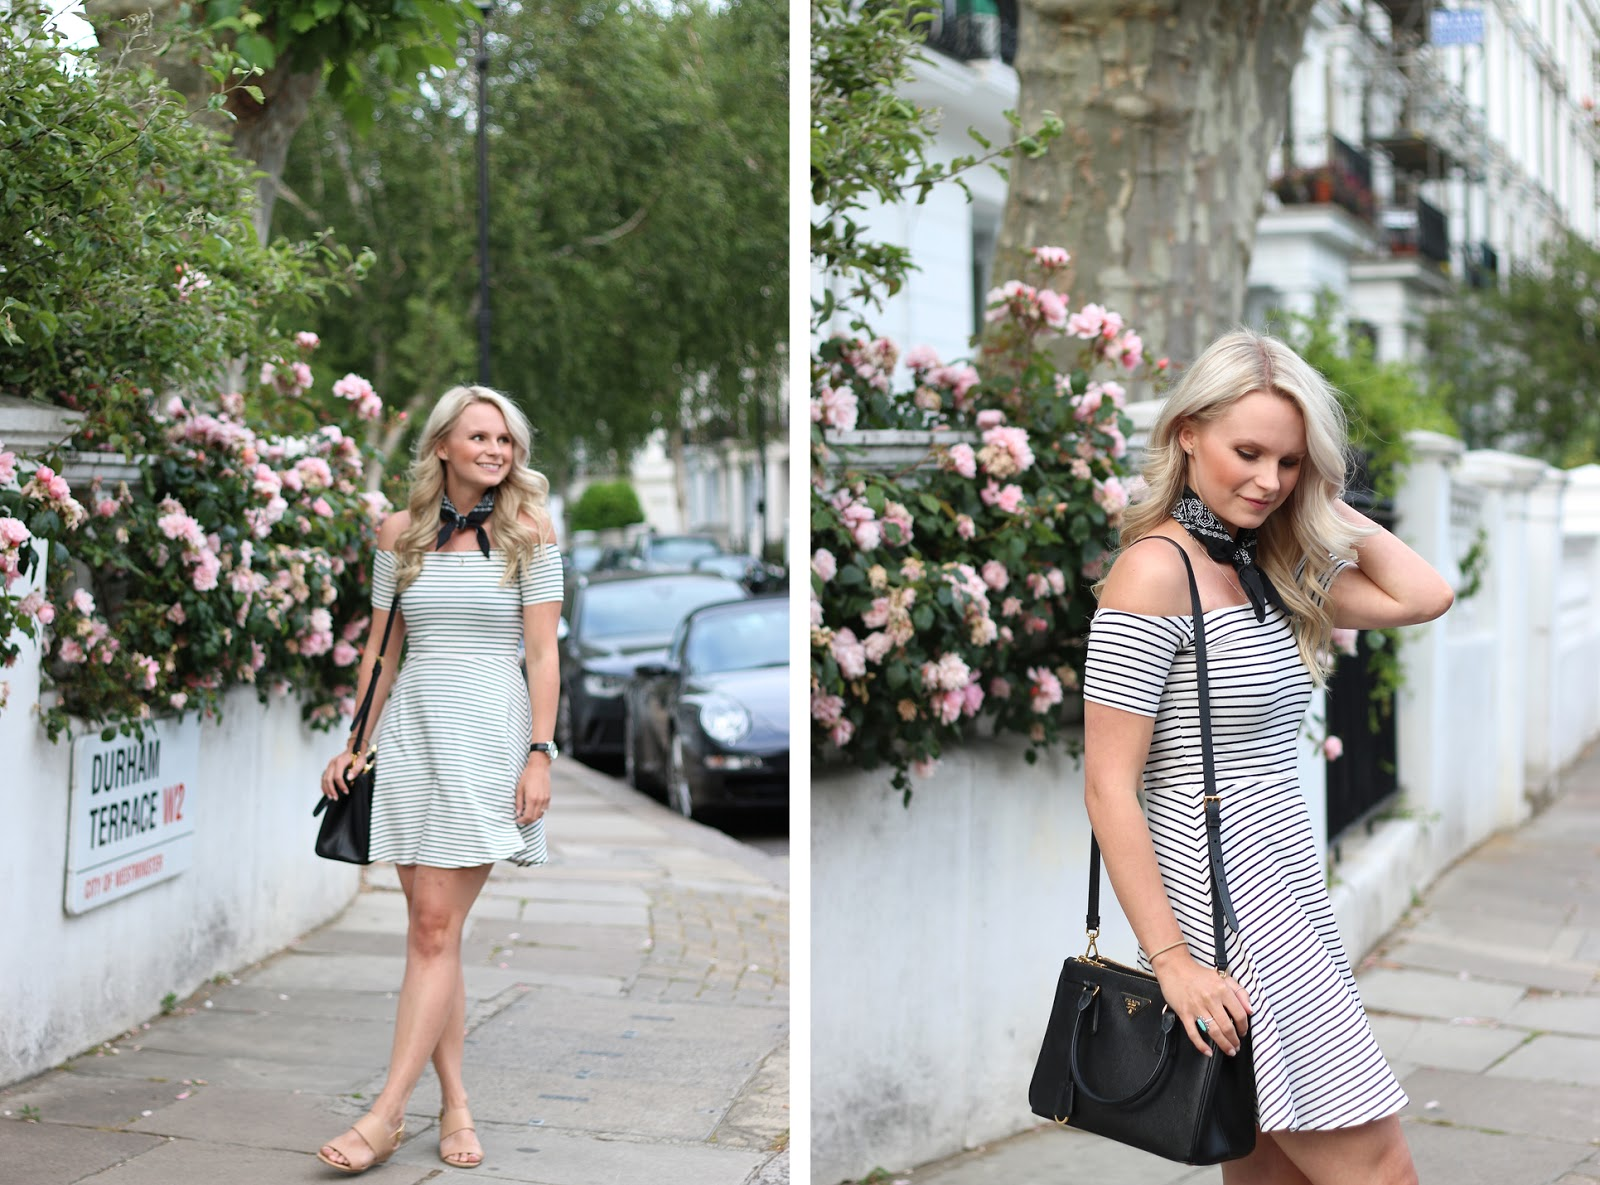 prada purse in london, happily strolling through the streets of notting hill, beautiful flowers in the background, easy go-to date night outfit, vintage shopping